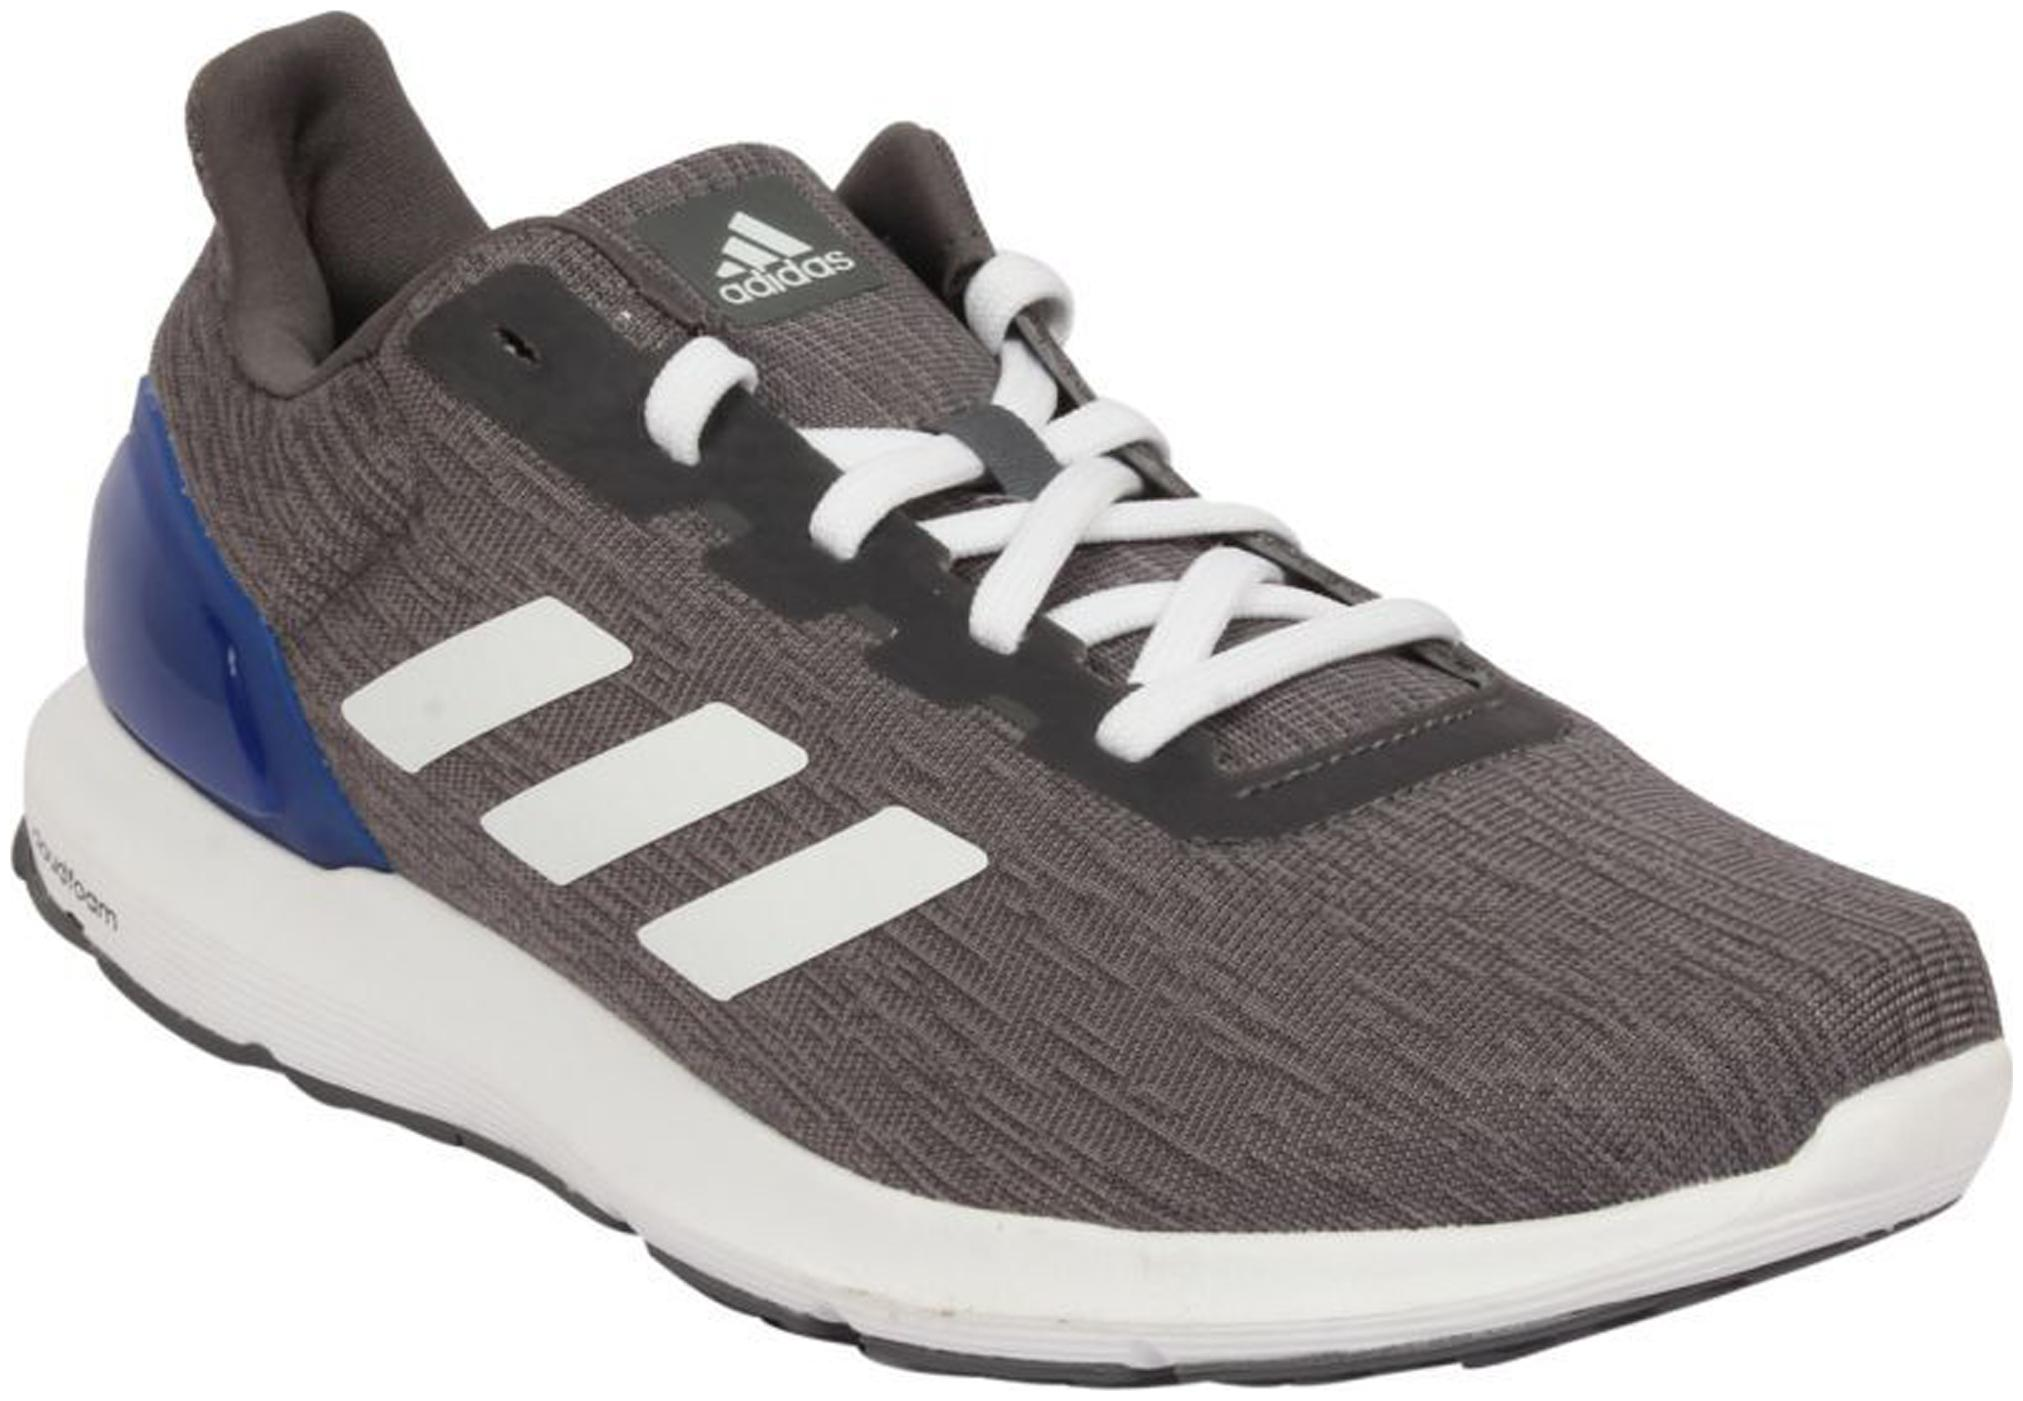 https://assetscdn1.paytm.com/images/catalog/product/F/FO/FOOADIDAS-SPORTSHOE74980E586A8D0/1563414429913_0..jpg